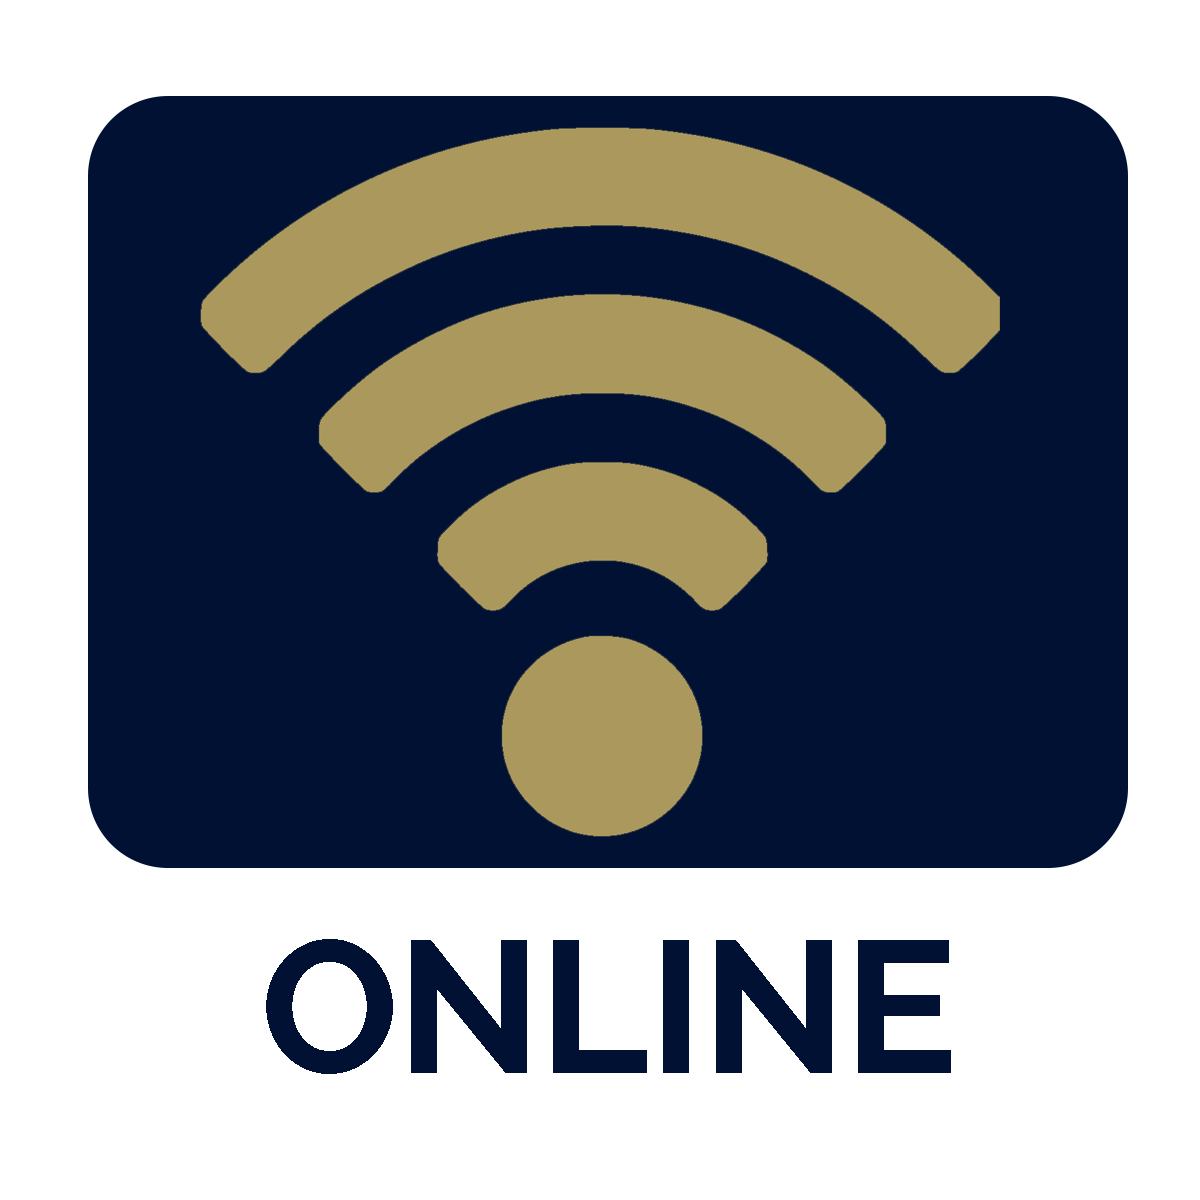 Online-Text_Icon.png